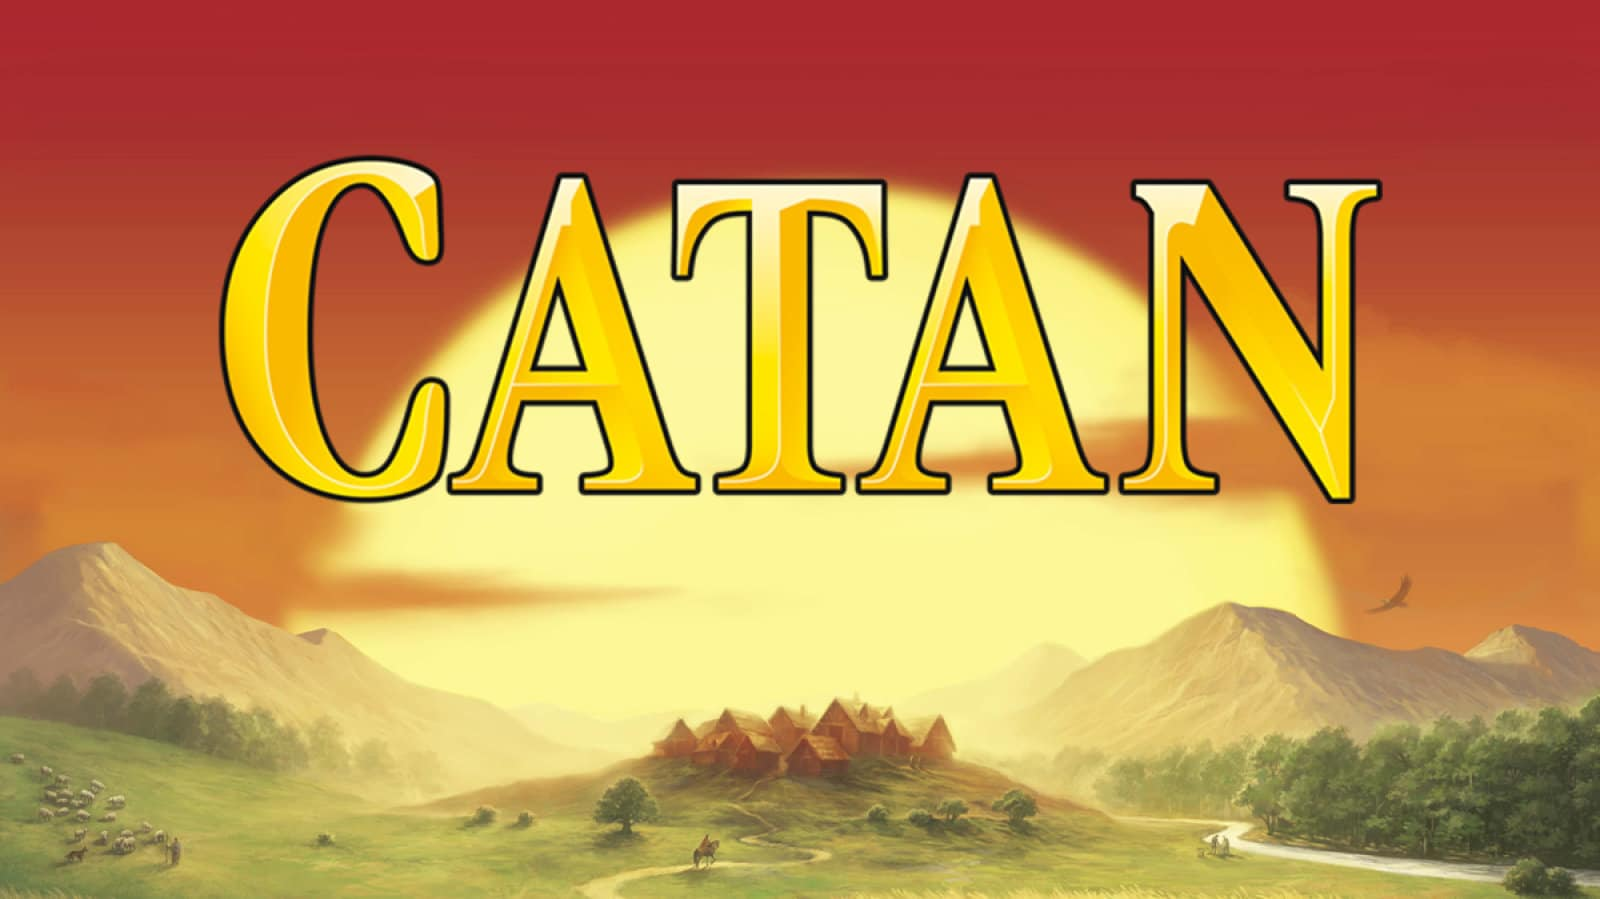 CATAN Launch Trailer